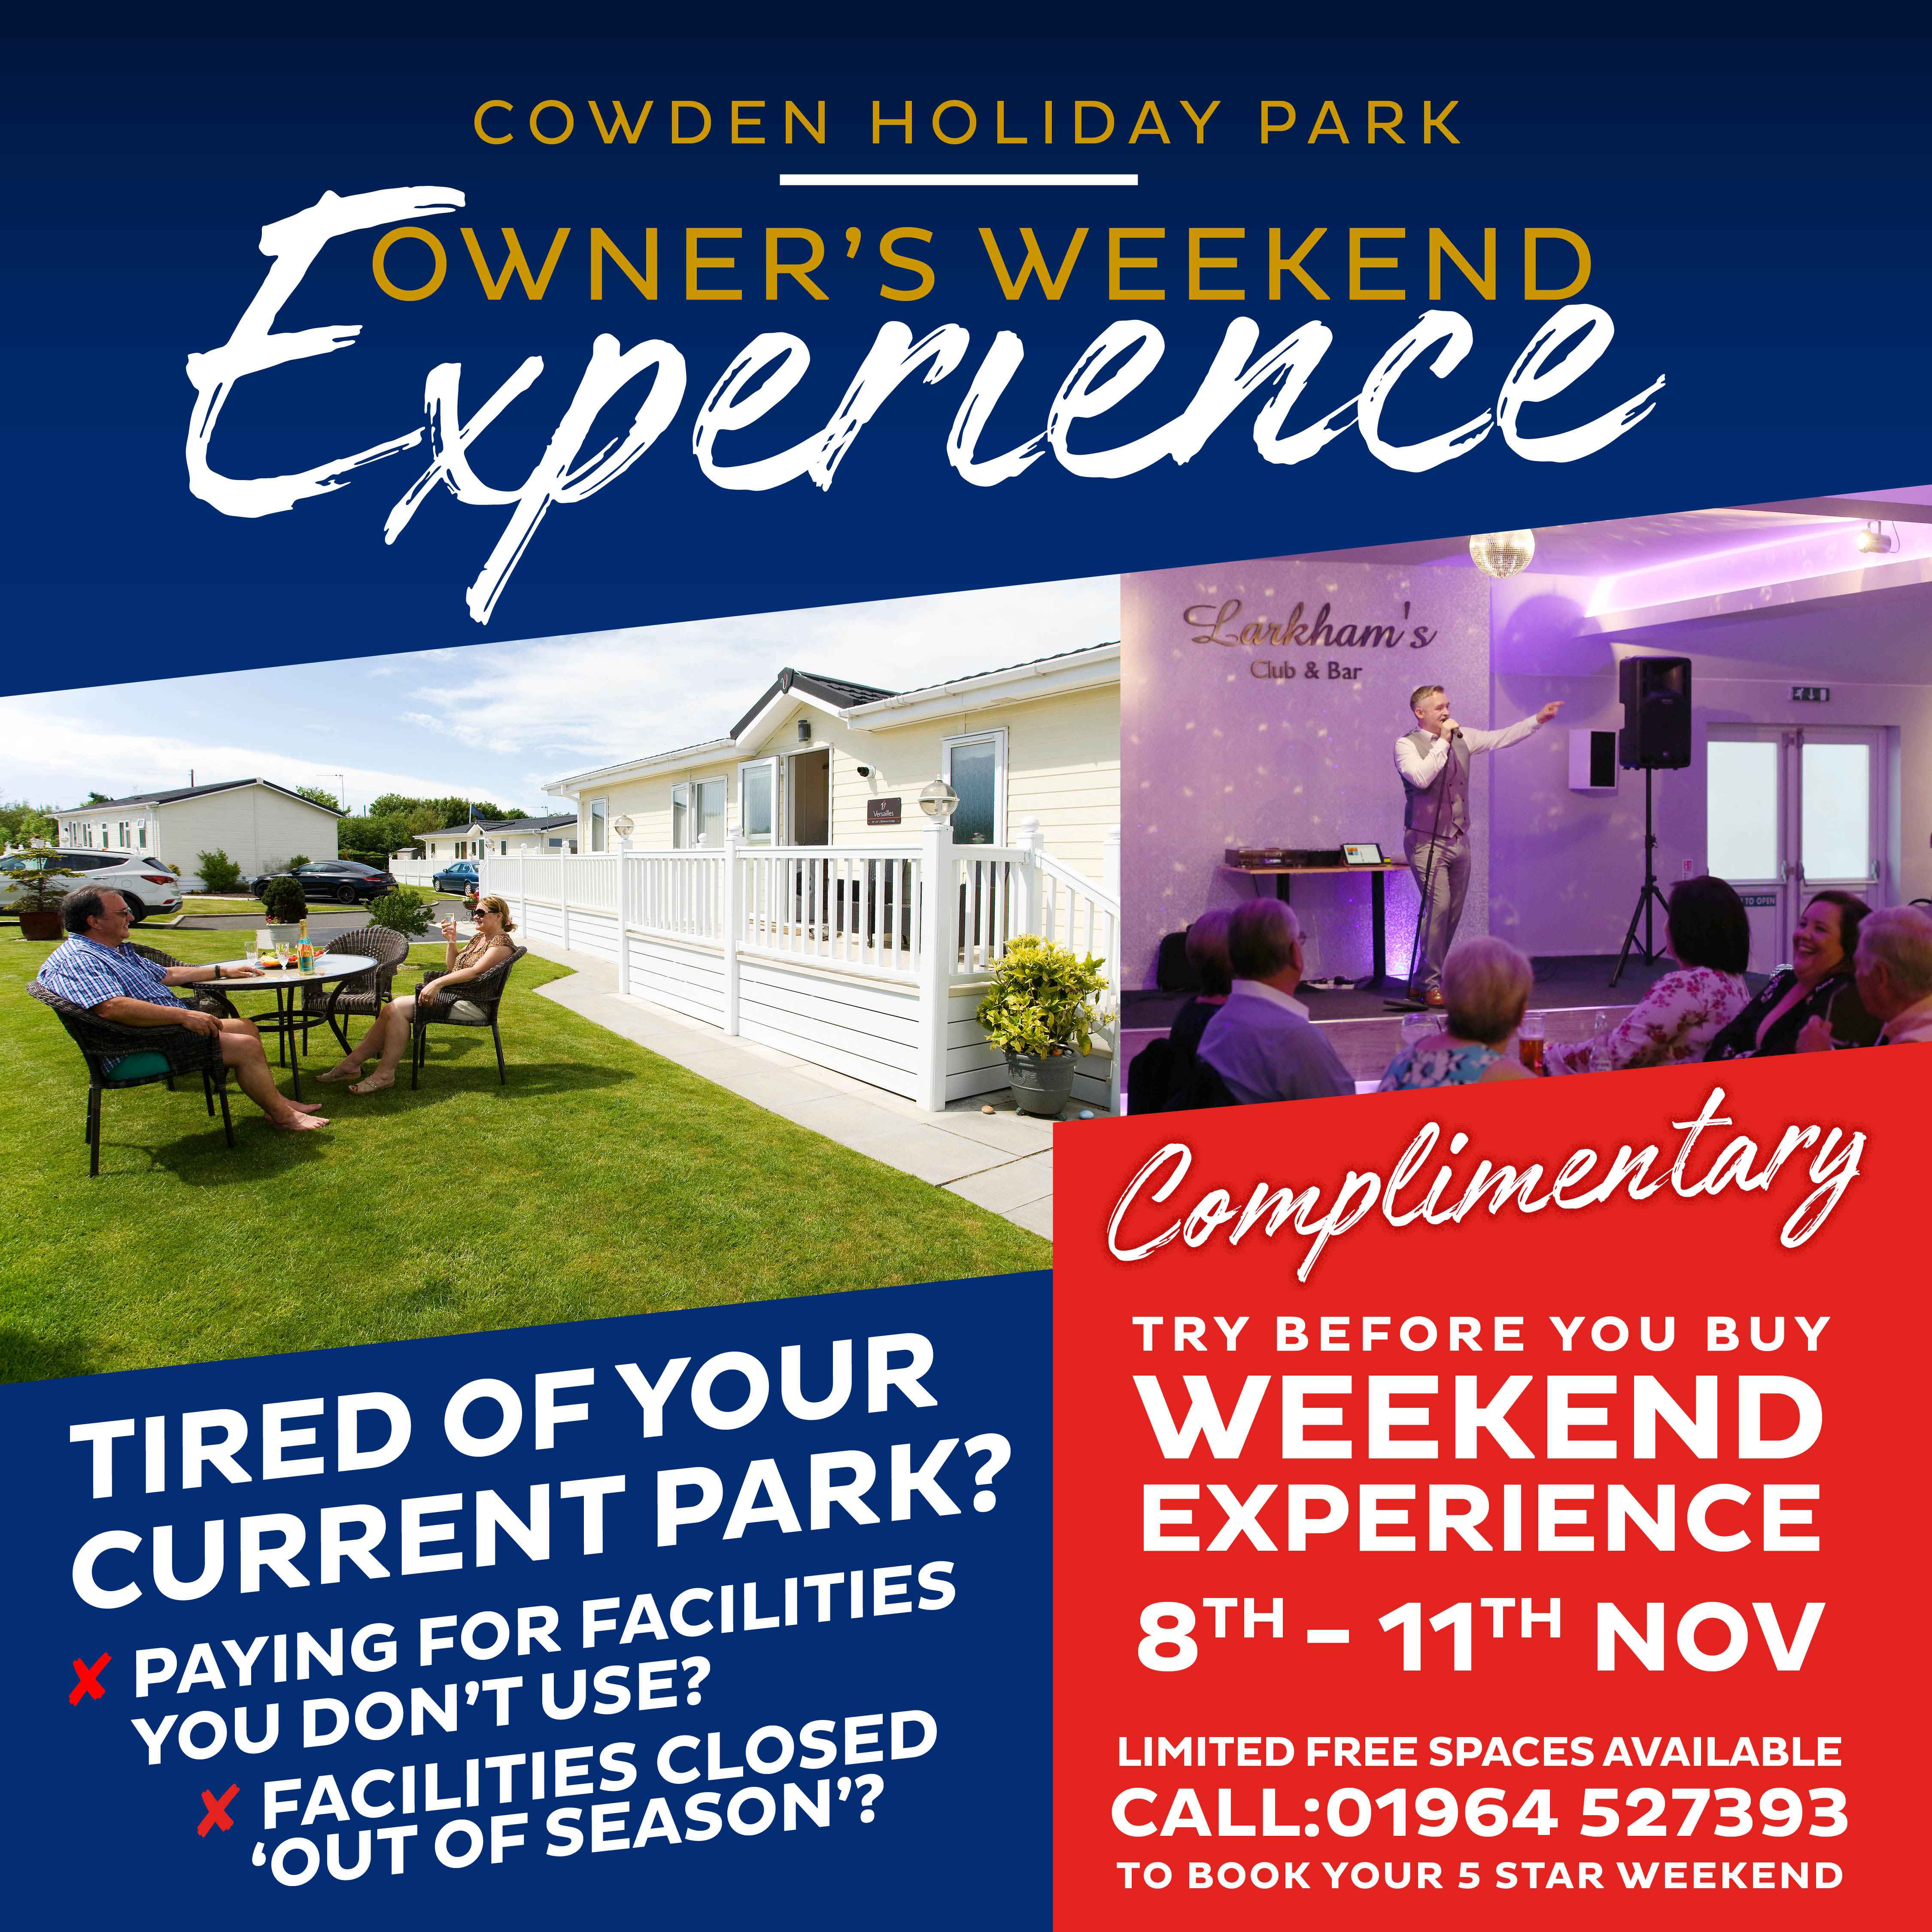 Cowden Holiday Park Owners Weekend Experience. Tired of your current park? Rising Site Fees? Facilities closed 'out of season'? Complimentary try before you buy weekend experience 8th - 11th Nov. Limited free spaces available. Call 01964 527393 to book your 5 star weekend.